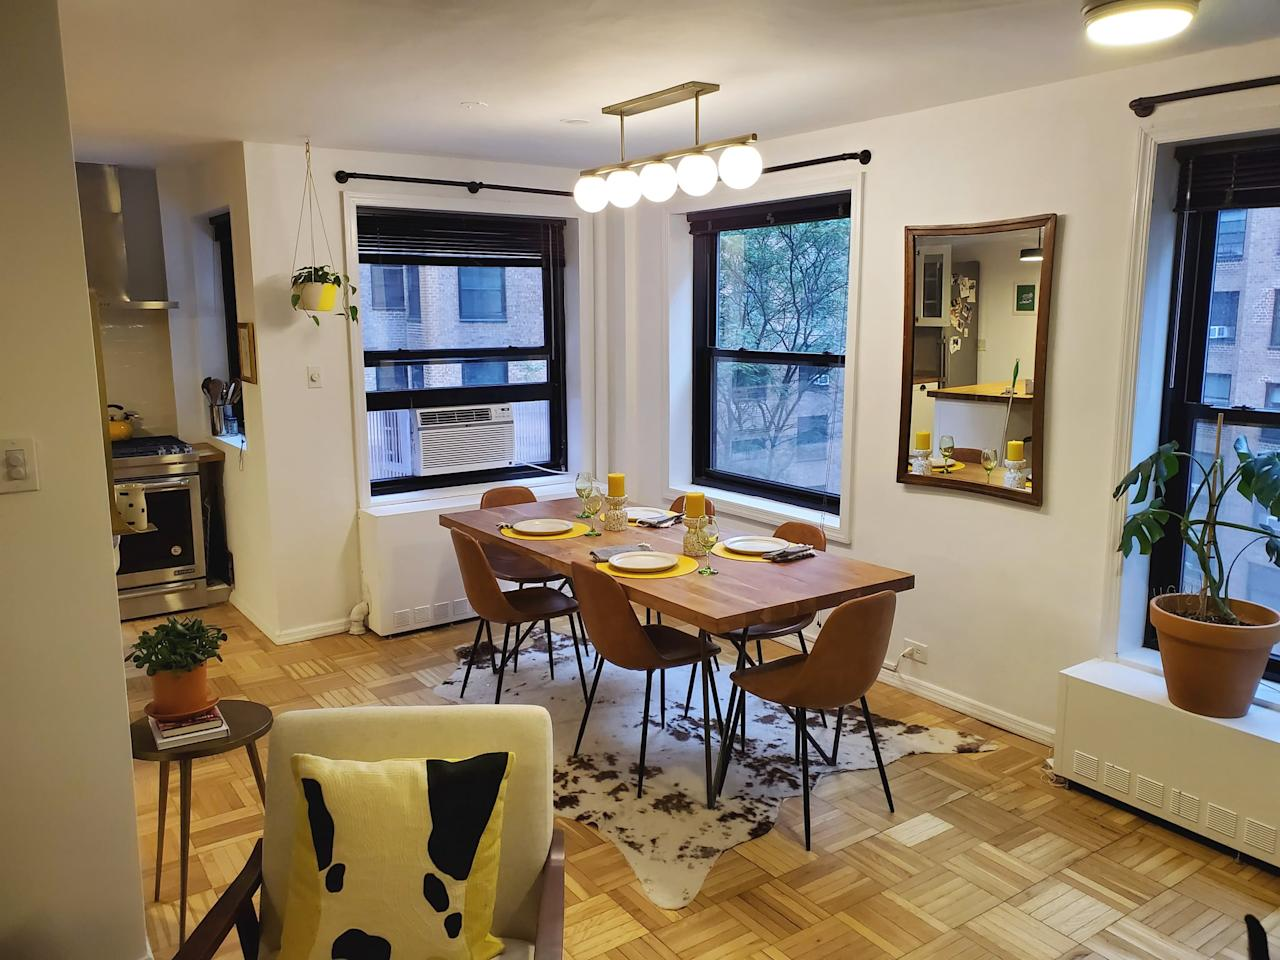 <p>This is our third apartment together and the first that was spacious enough to accommodate a dining table. We splurged on the table and lighting fixture, but all the other decor pieces were relatively affordable, including some secondhand gems (like the mirror and wine glasses).</p>